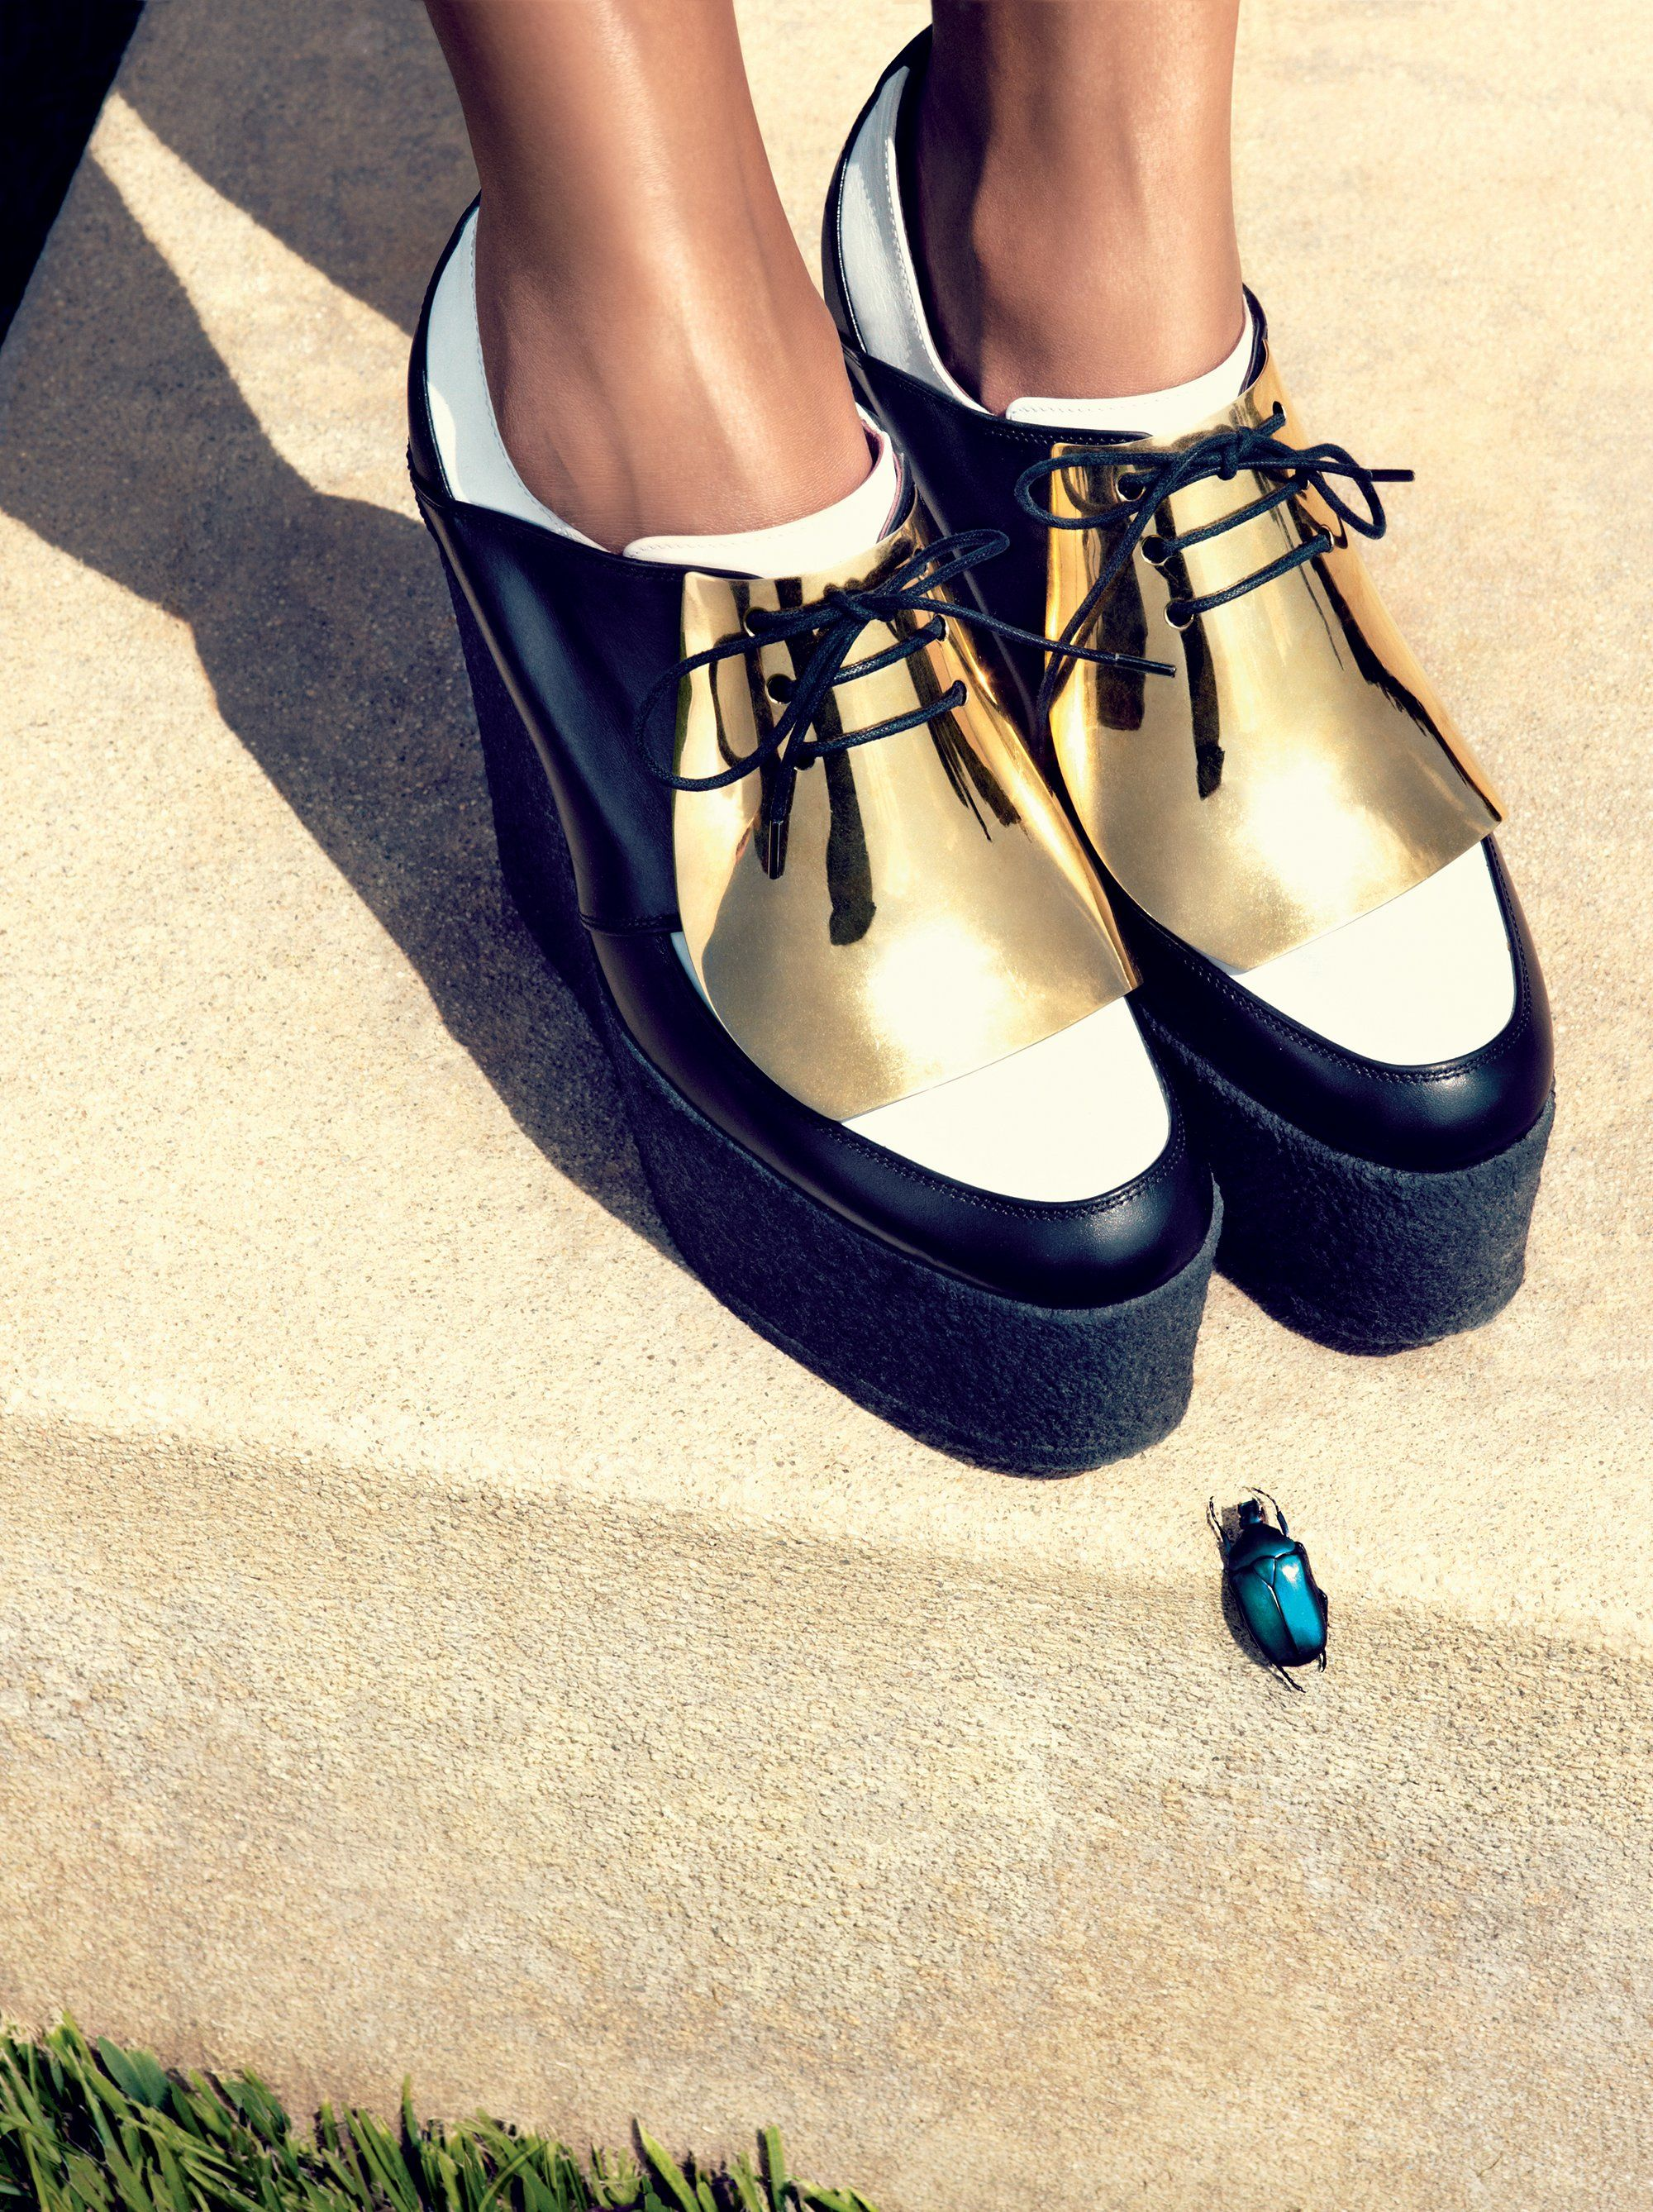 Summer's Favorite Shoe Will Make You Want to Ditch YourStilettos